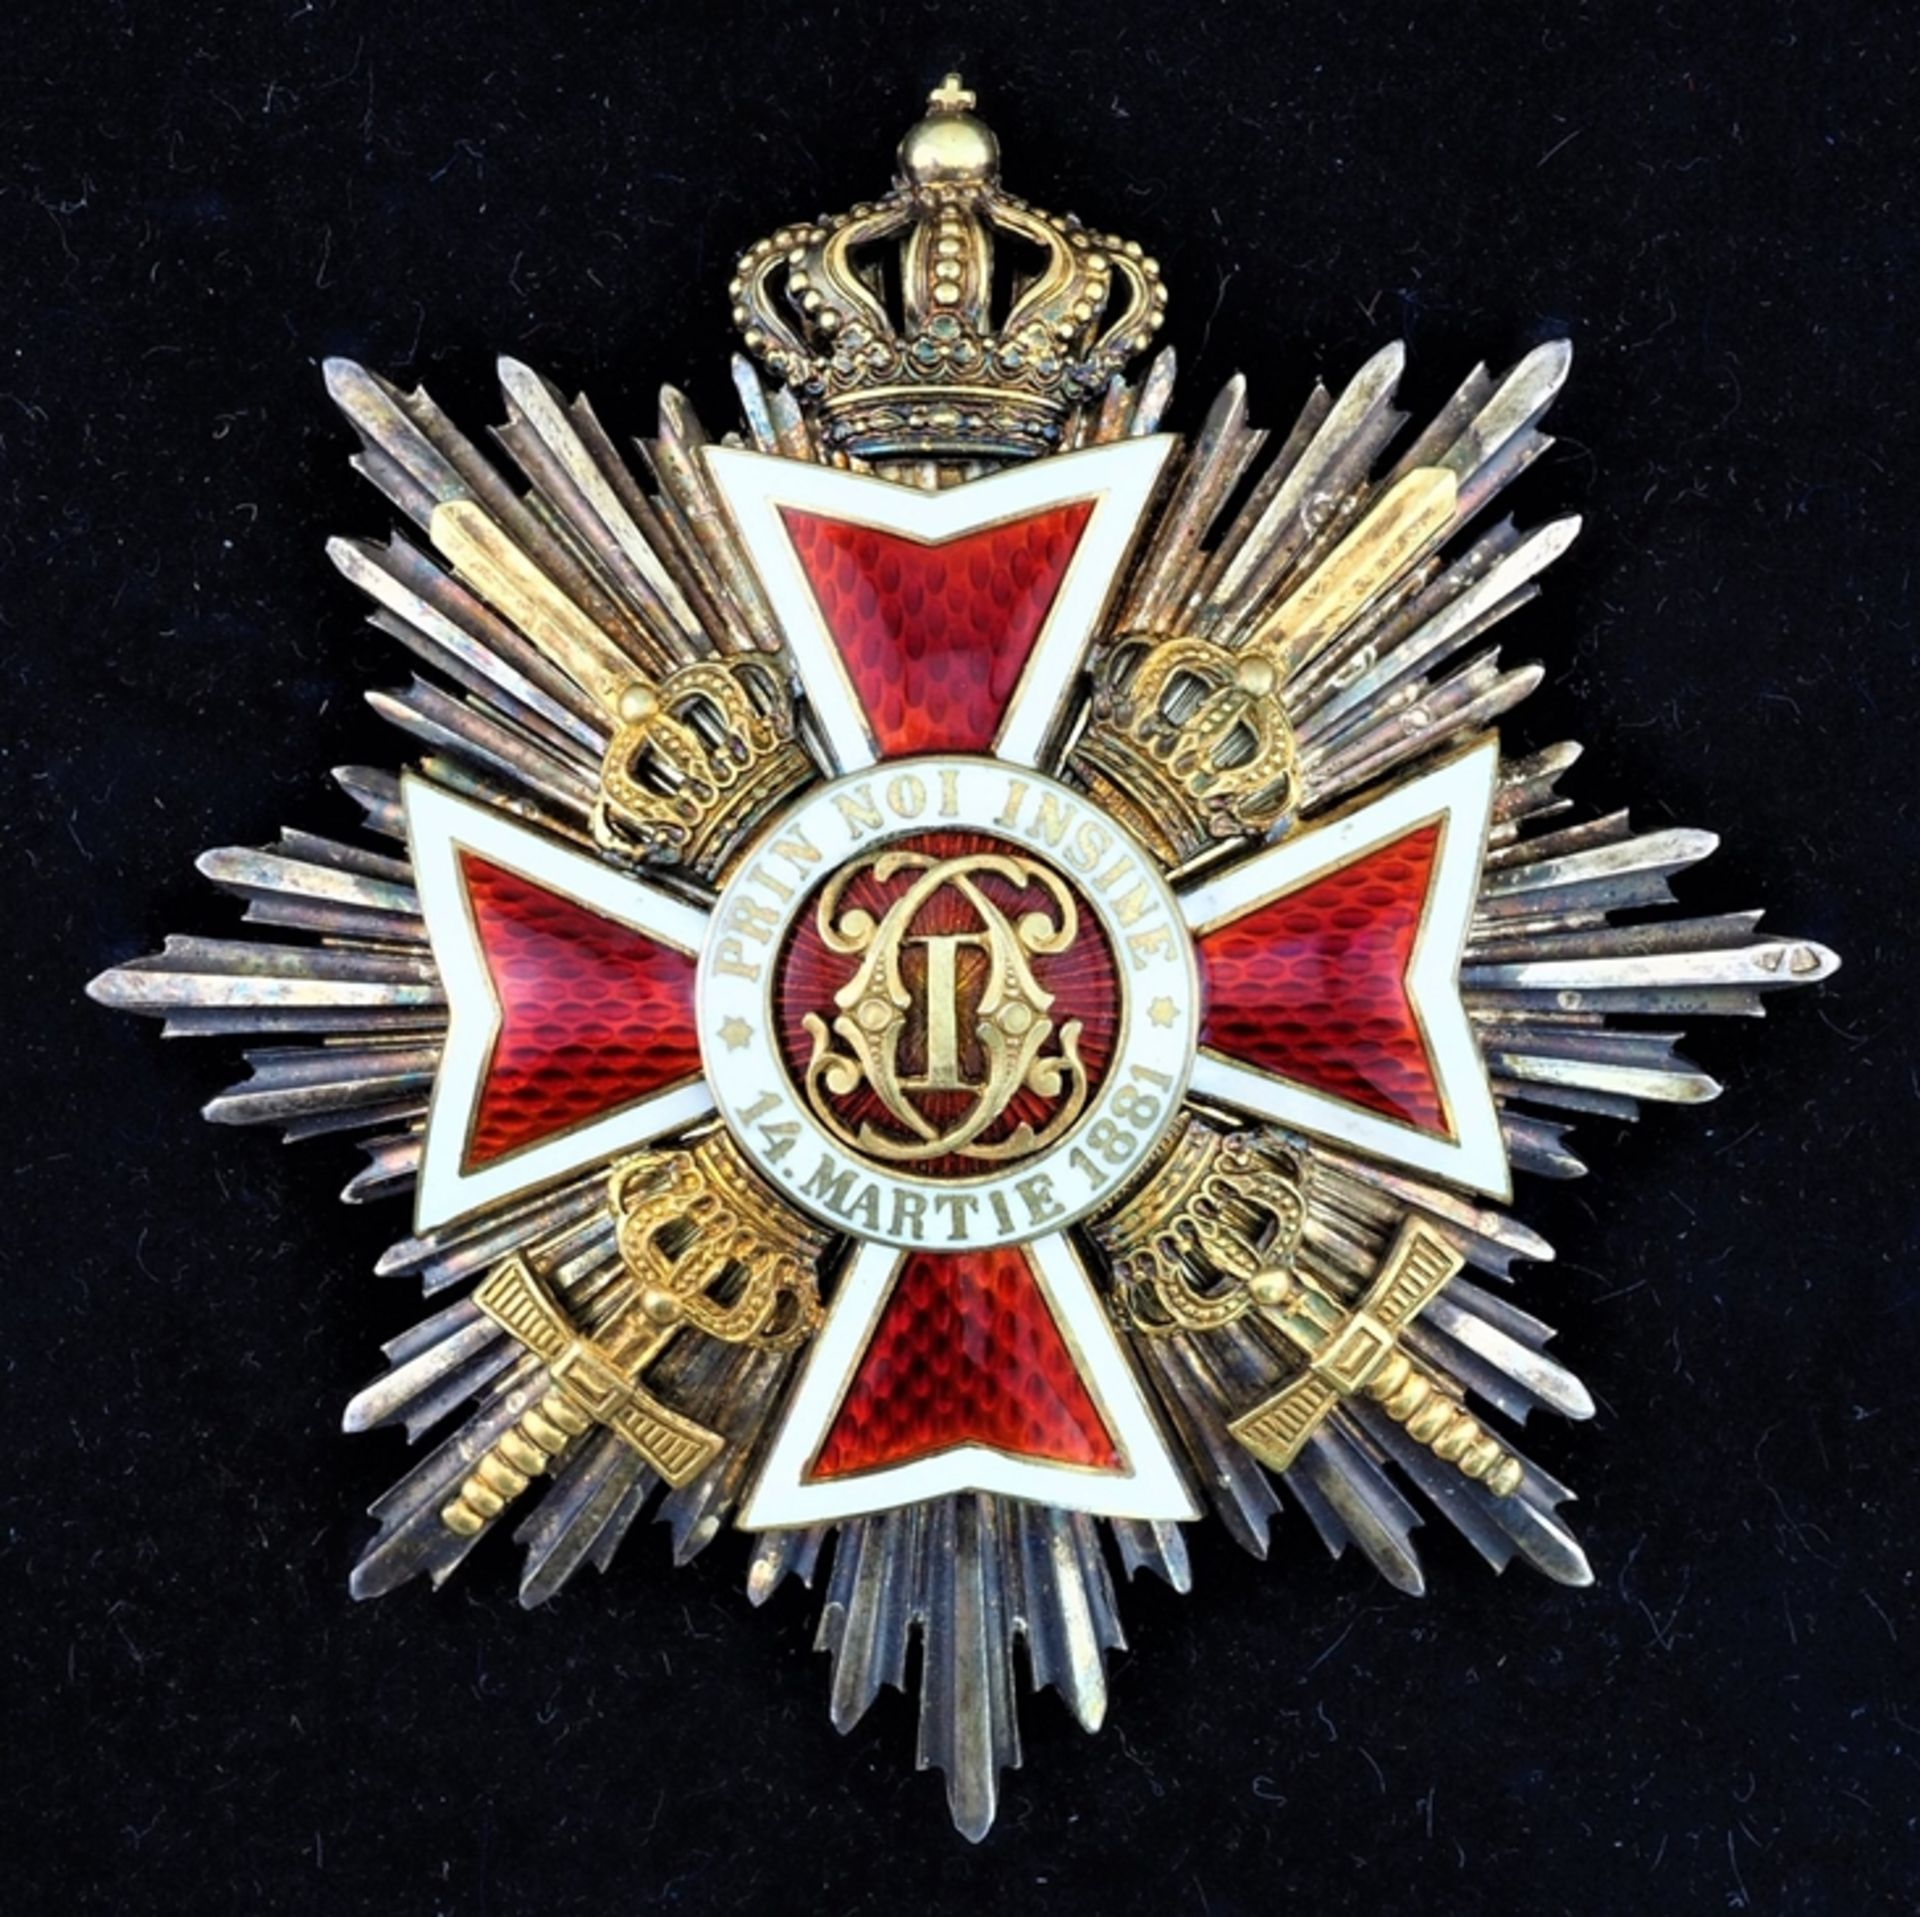 World War 2, Third Reich, Medals & Decorations Legacy: Commanding General of the Luftwaffe (Wehrmac - Image 20 of 27